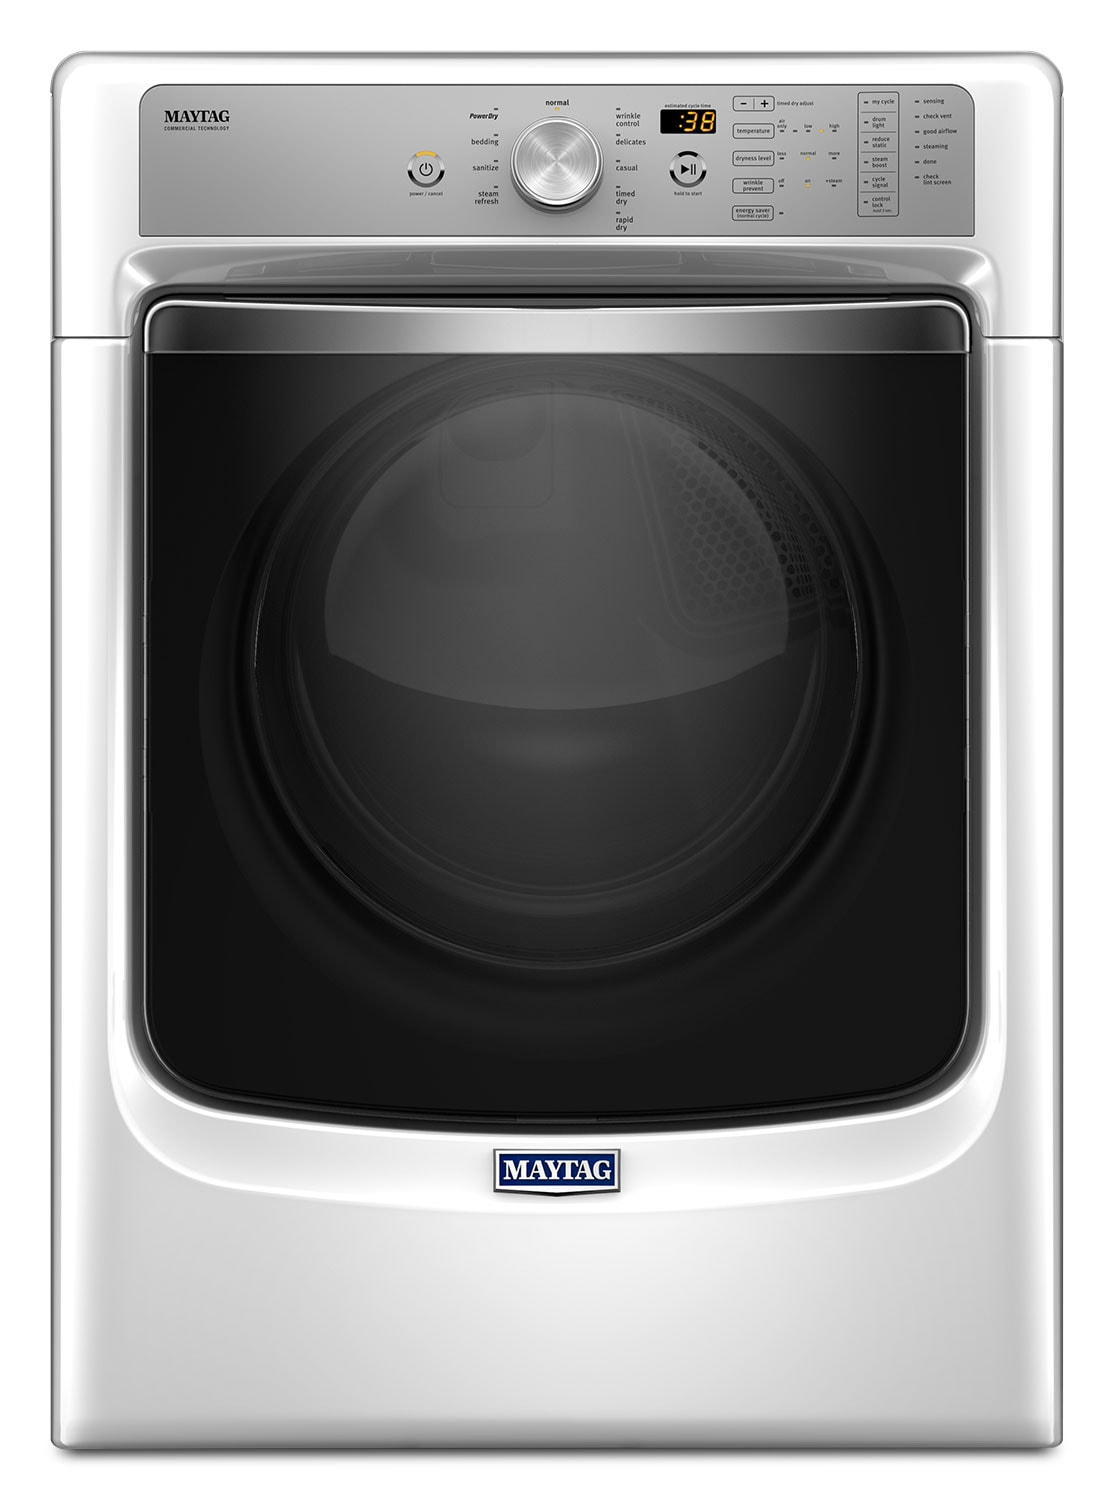 Maytag 7.4 Cu. Ft. Electric Dryer – YMED8200FW